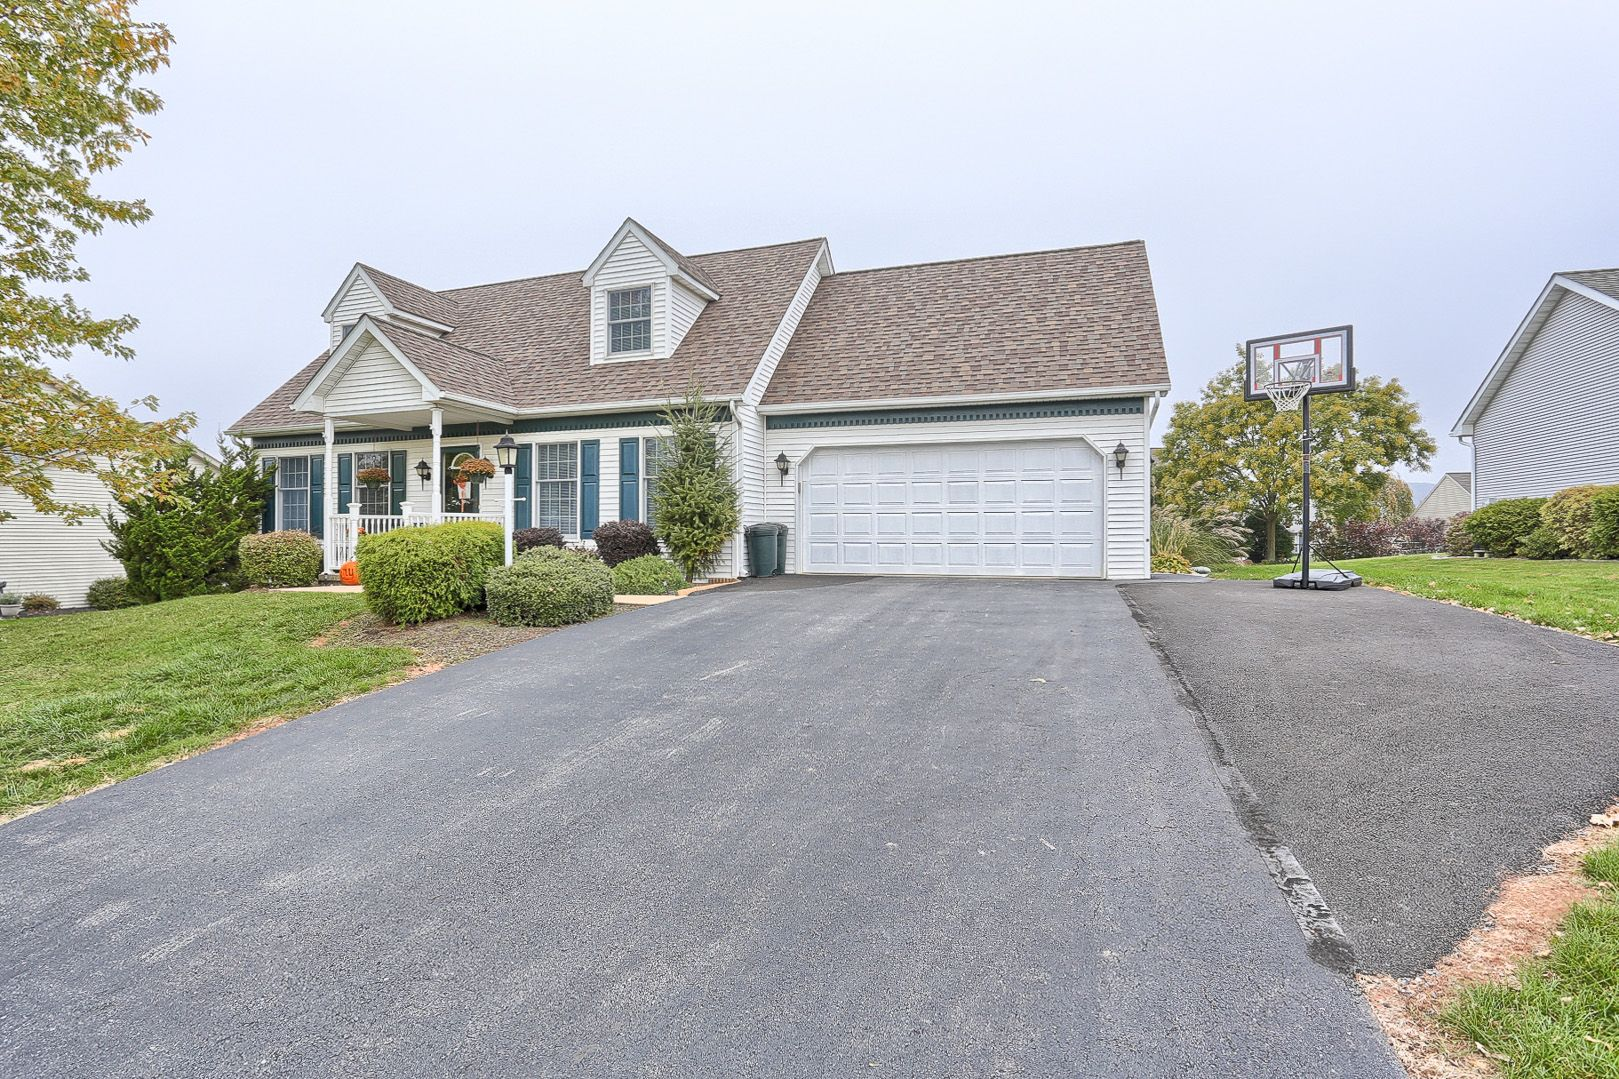 Front Right View #Reinholds #PA #homesforsale #realestate #pennsylvania